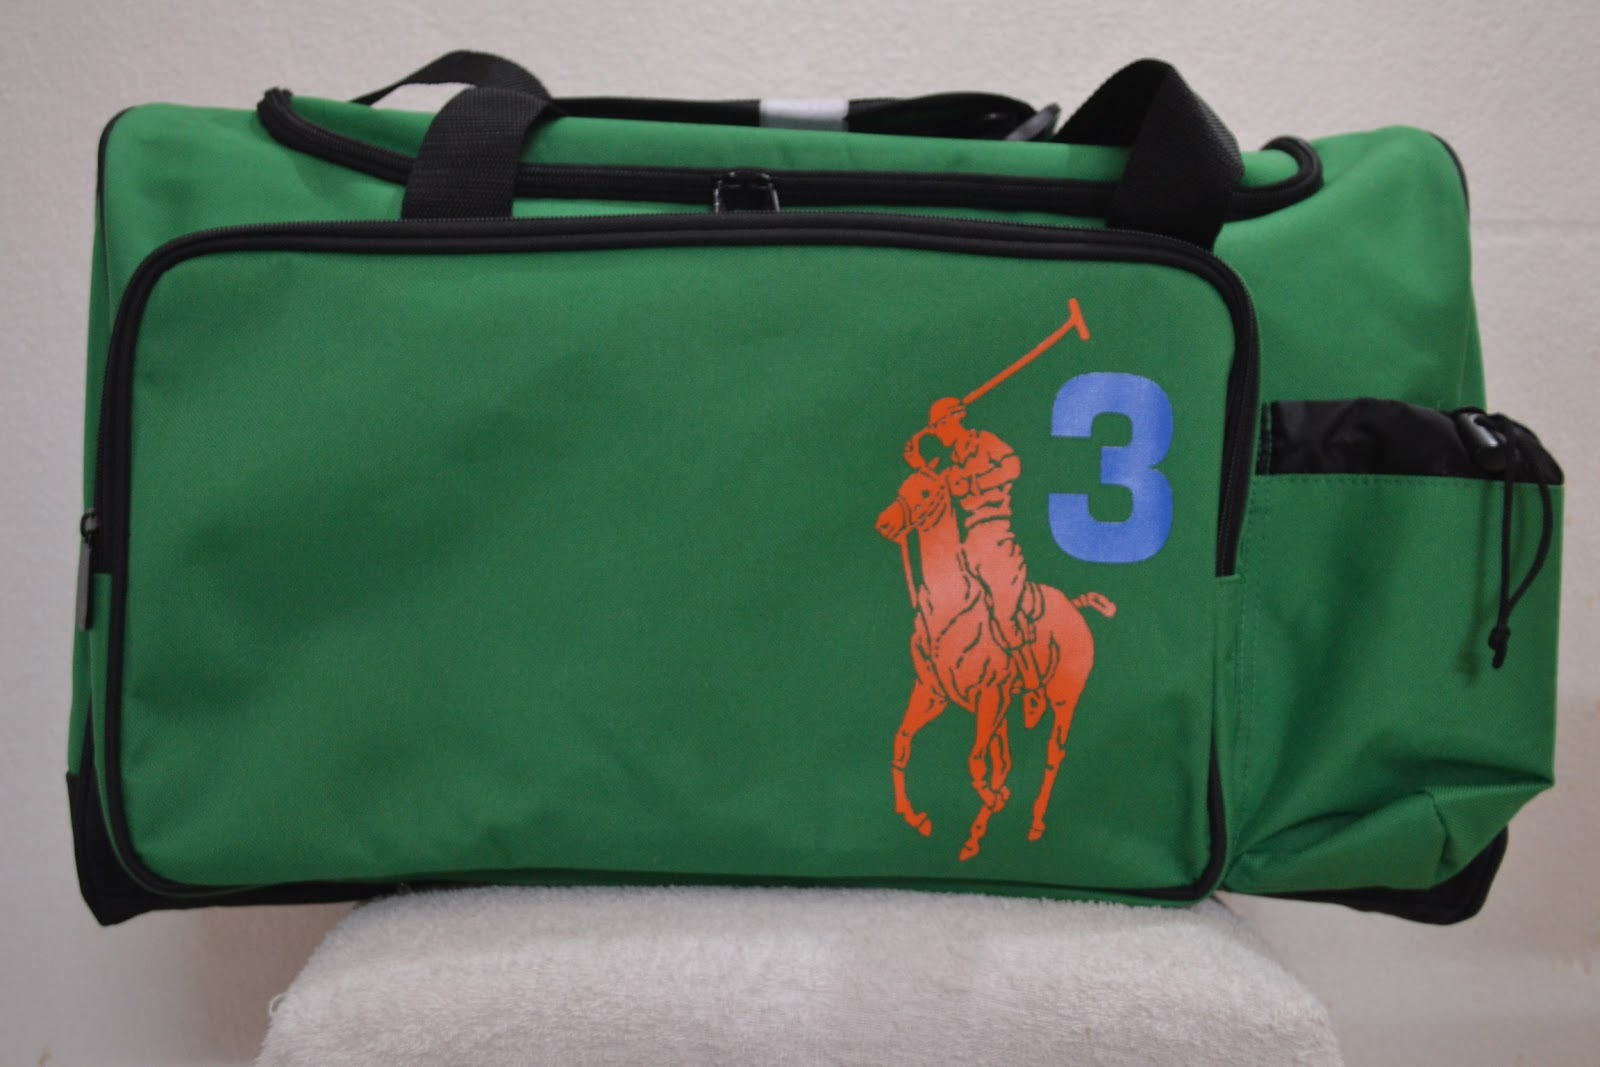 Polo Ralph Lauren Big Pony Weekender Travel Duffle Sports Gym Bag Green 3 ff03ea15ed422